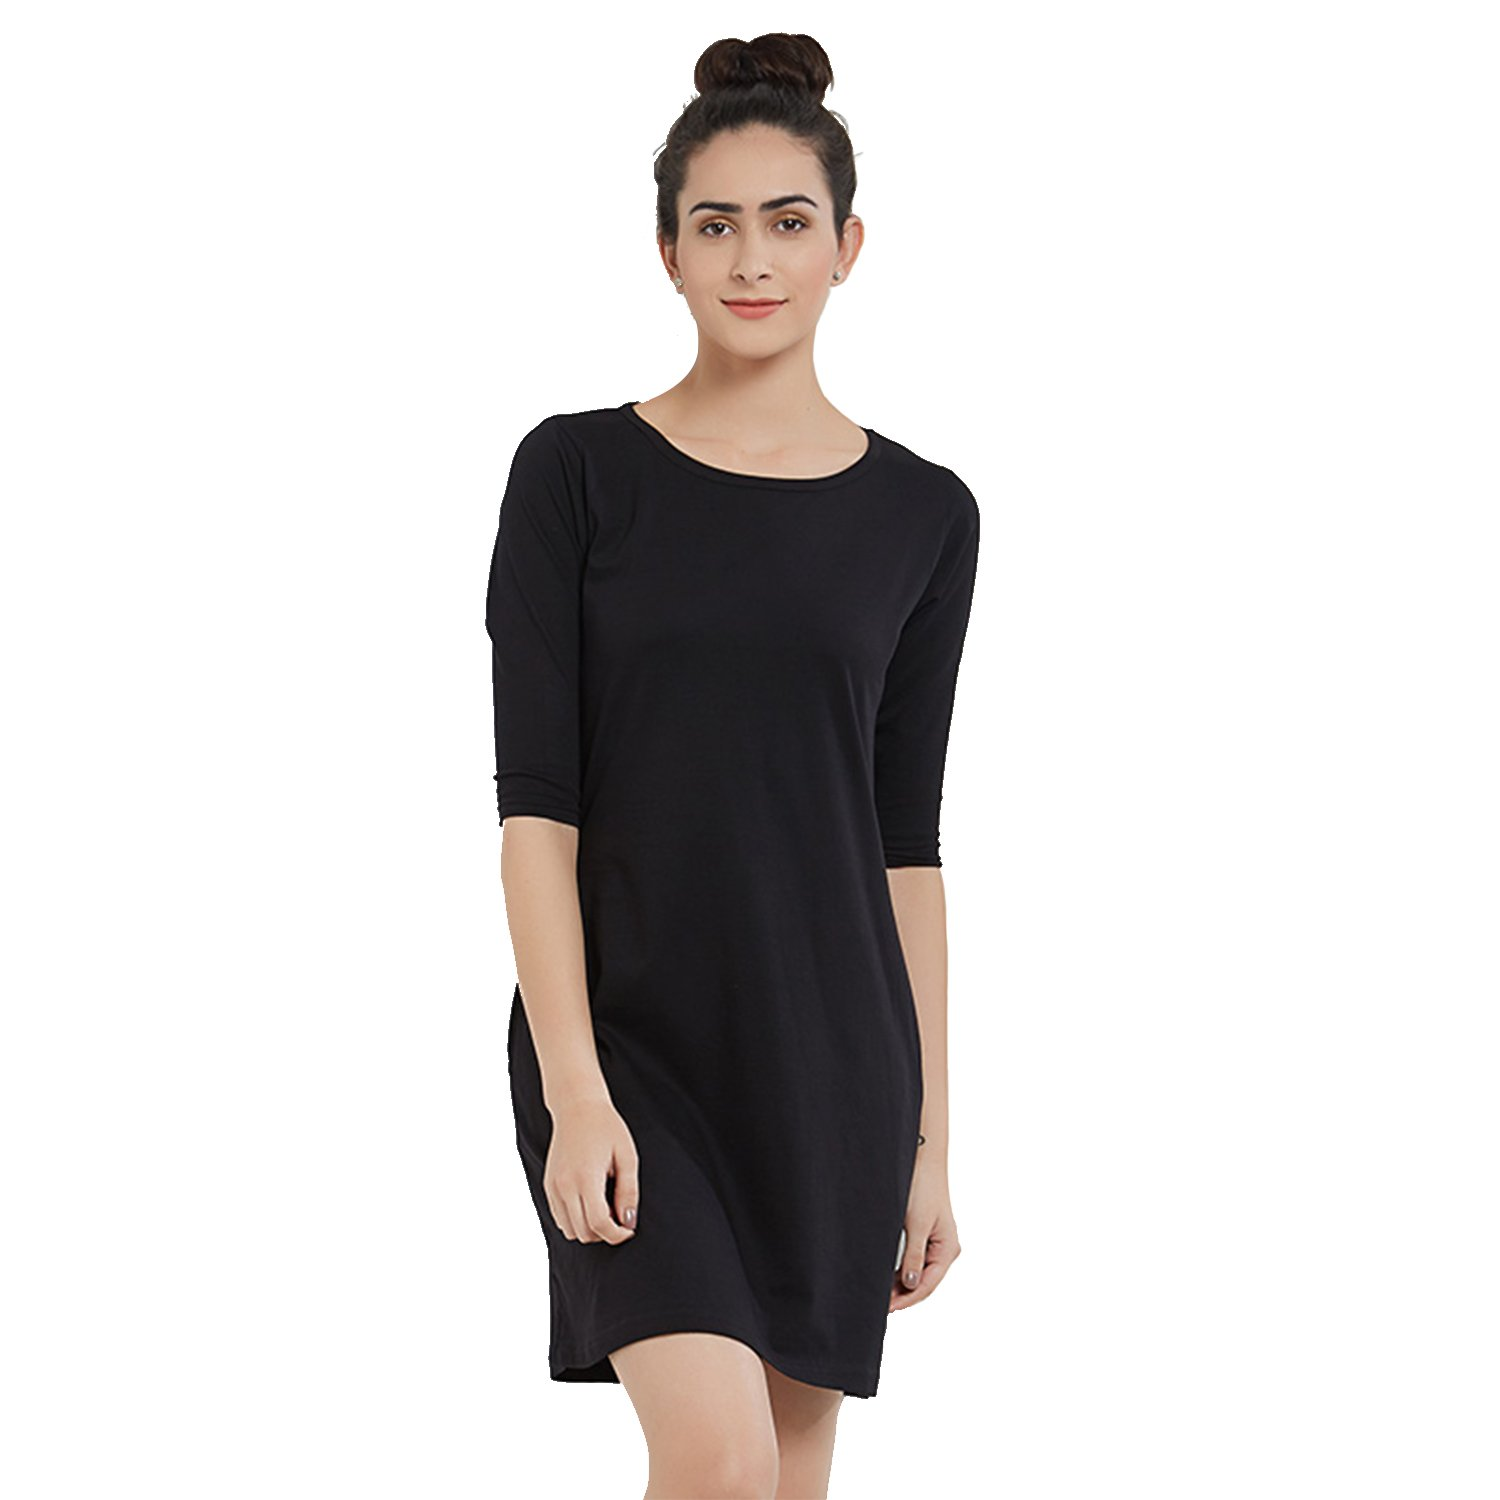 5a0039a3a848 The Souled Store Solids  Black T-Shirt Dress Plain Black Cotton Dress for  Women and Girls  Amazon.in  Clothing   Accessories